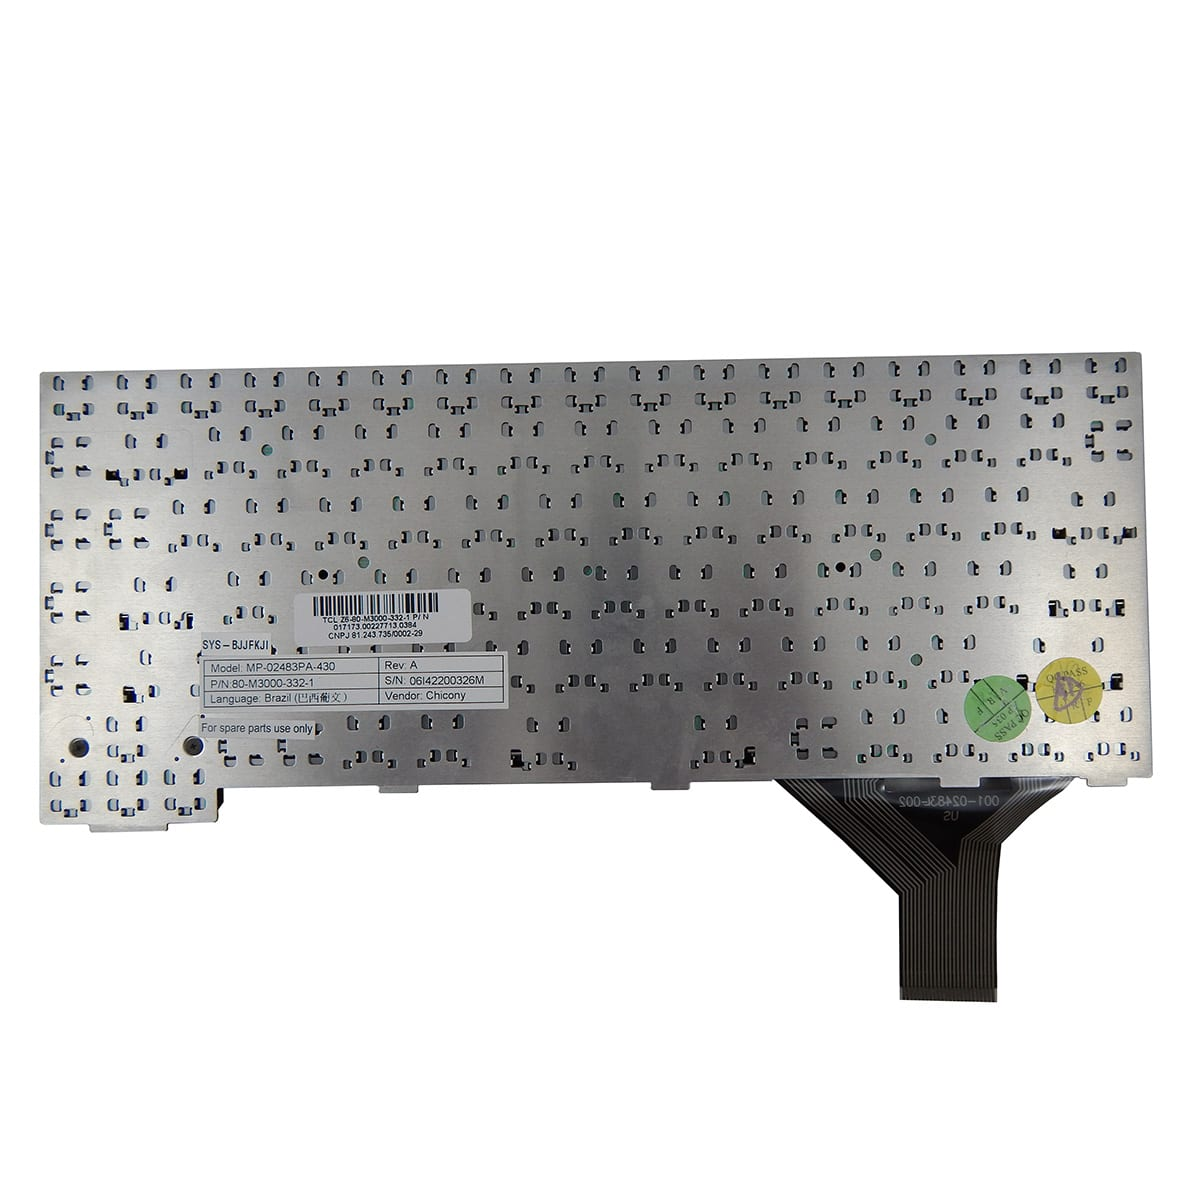 Teclado Notebook Positivo Pn: MP-02483PA-430 / 80-M3000-332-1